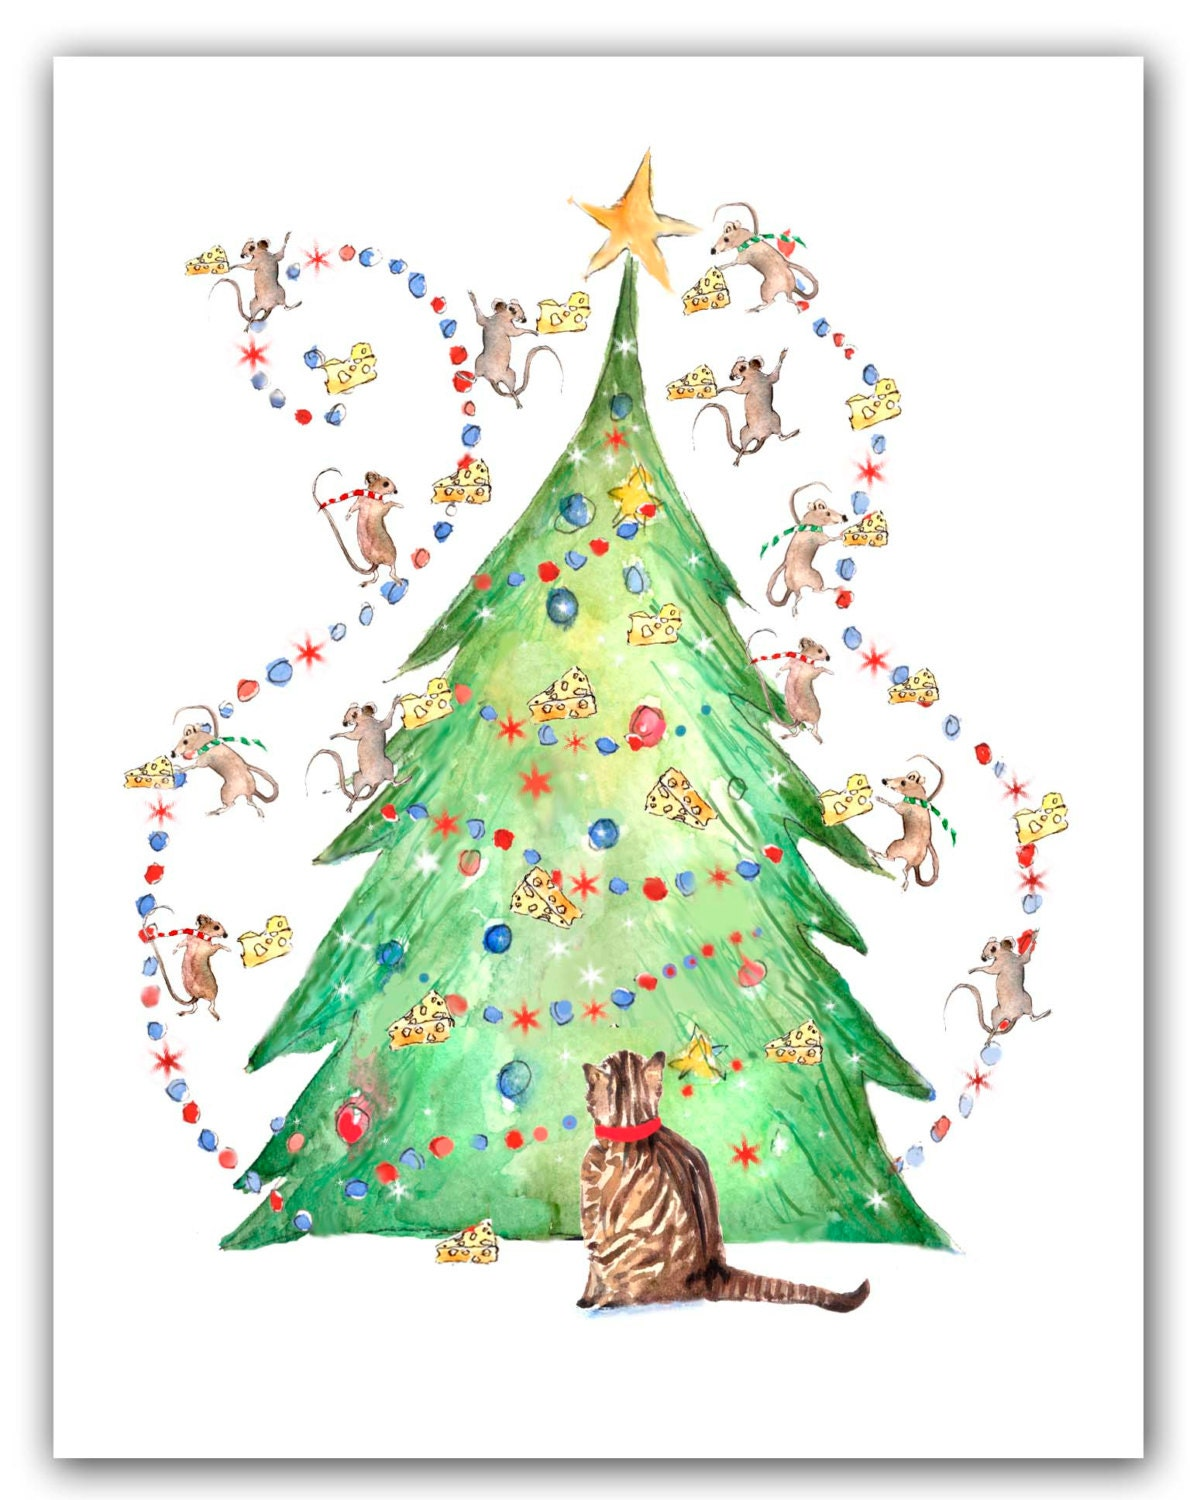 Cat with mice tree Christmas cards. 10 cat holiday cards | Etsy